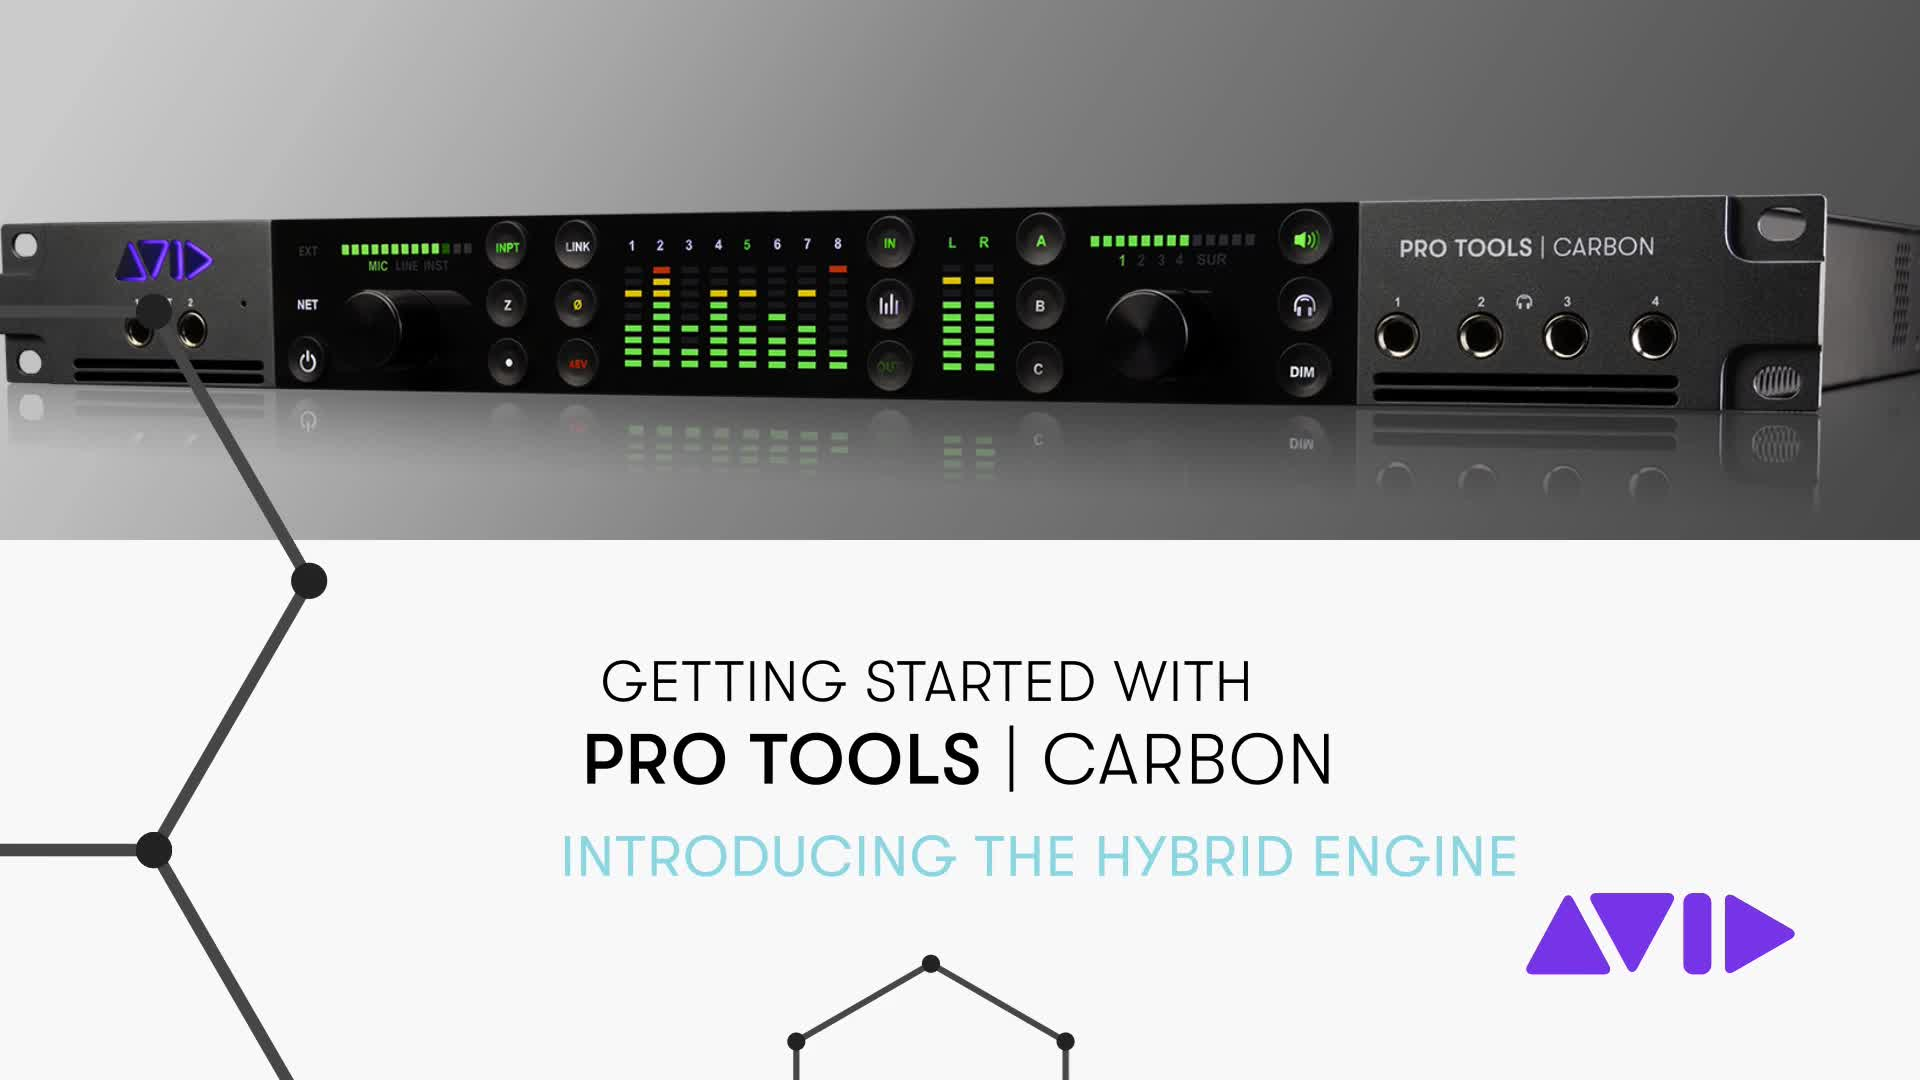 07 Pro Tools Carbon Getting Started – Introducing the Hybrid Engine